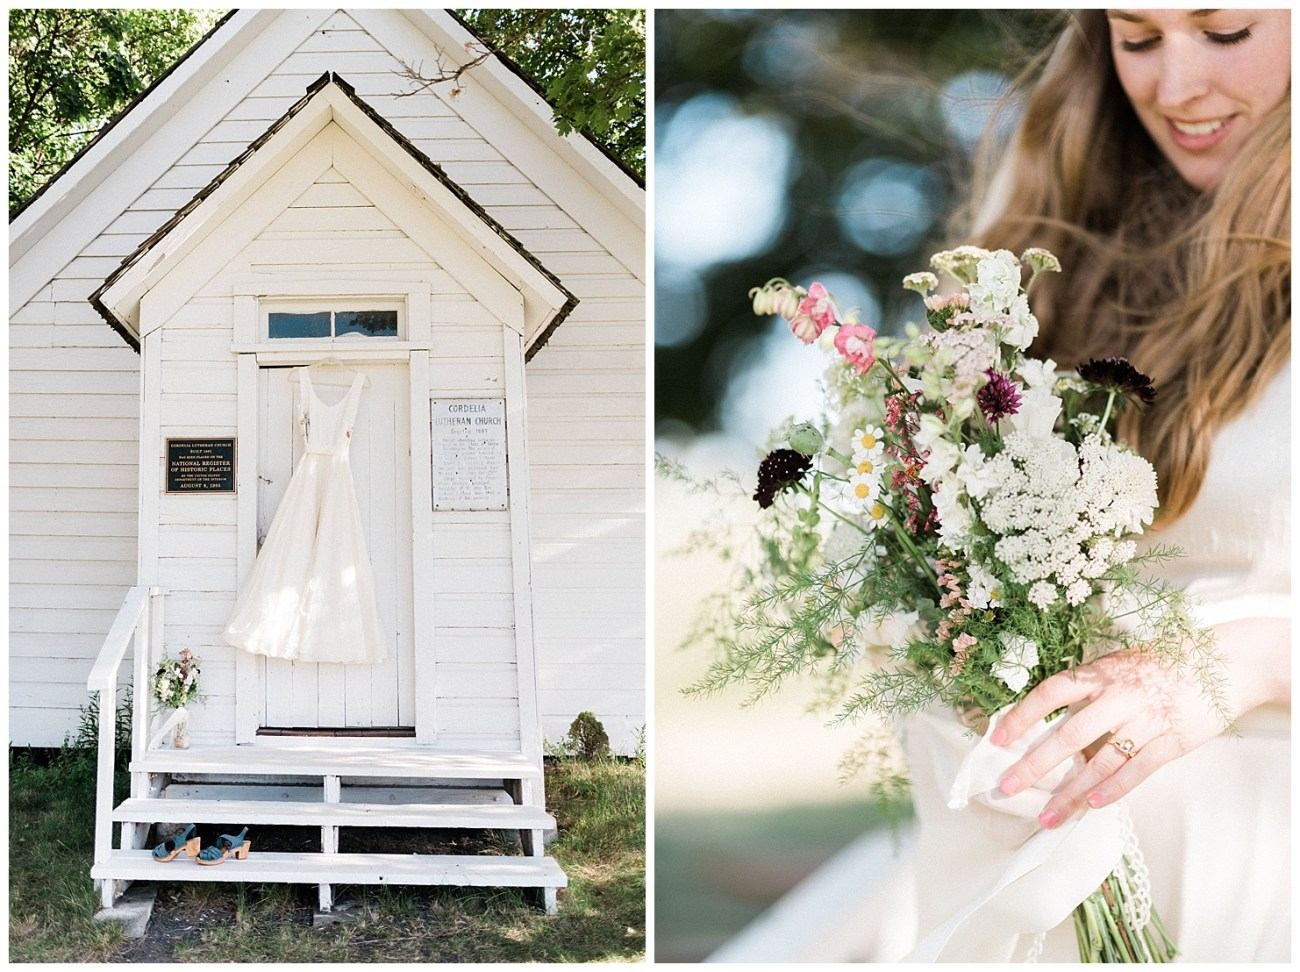 Photos of Wedding Dress & Bouquet by Forthright Photo